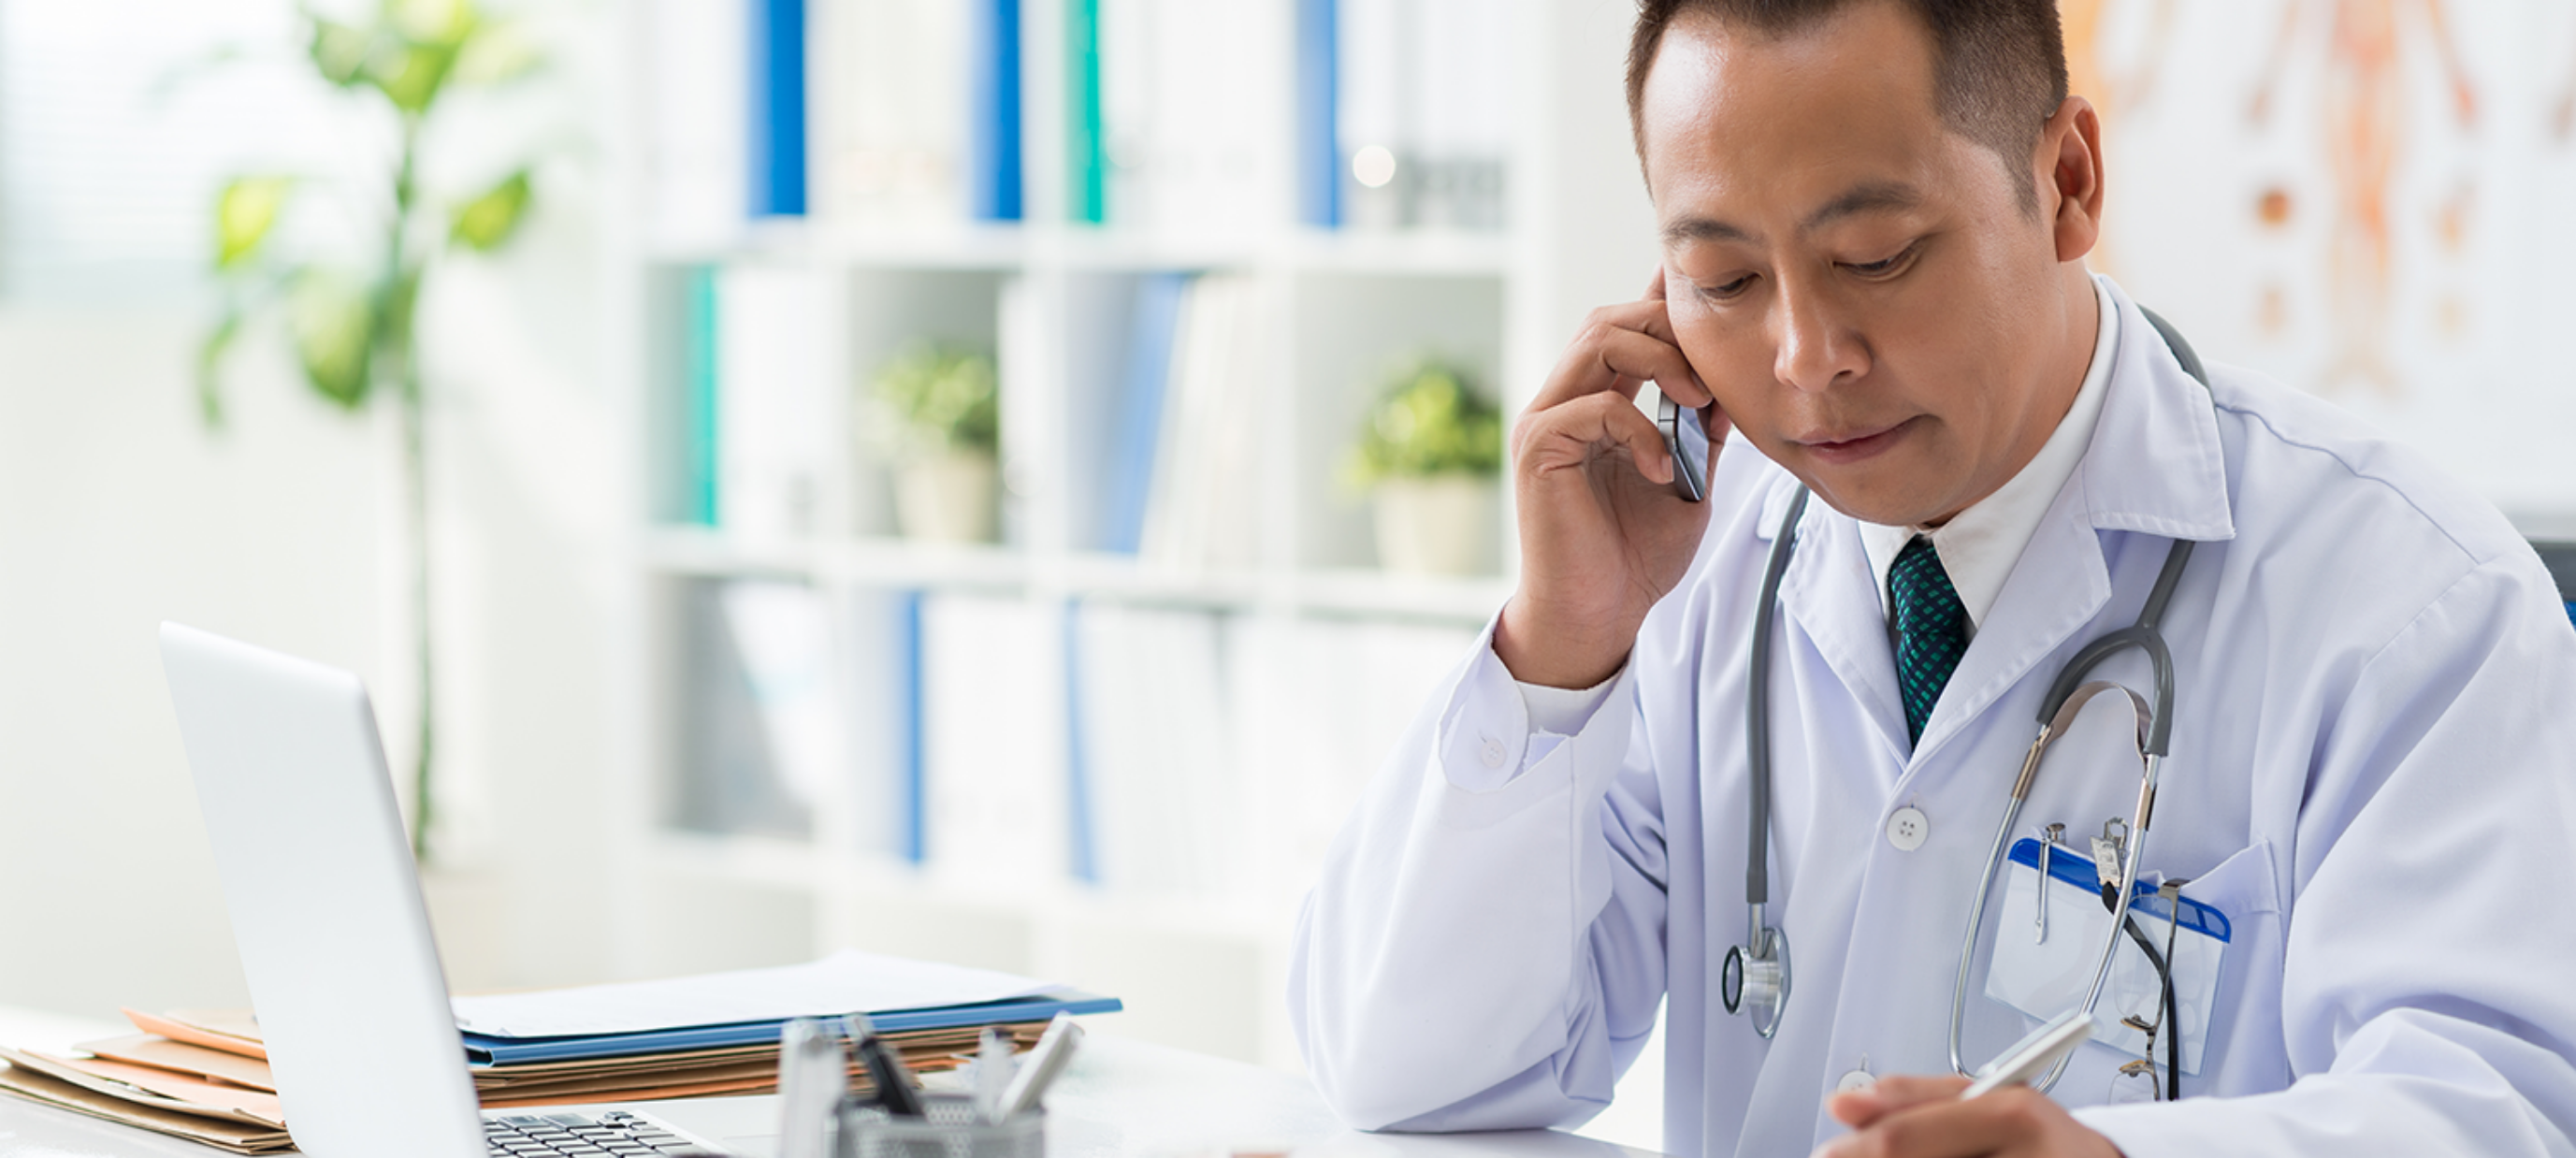 Photo of an Asian man wearing a white lab coat and a stethoscope, listening intently on the phone